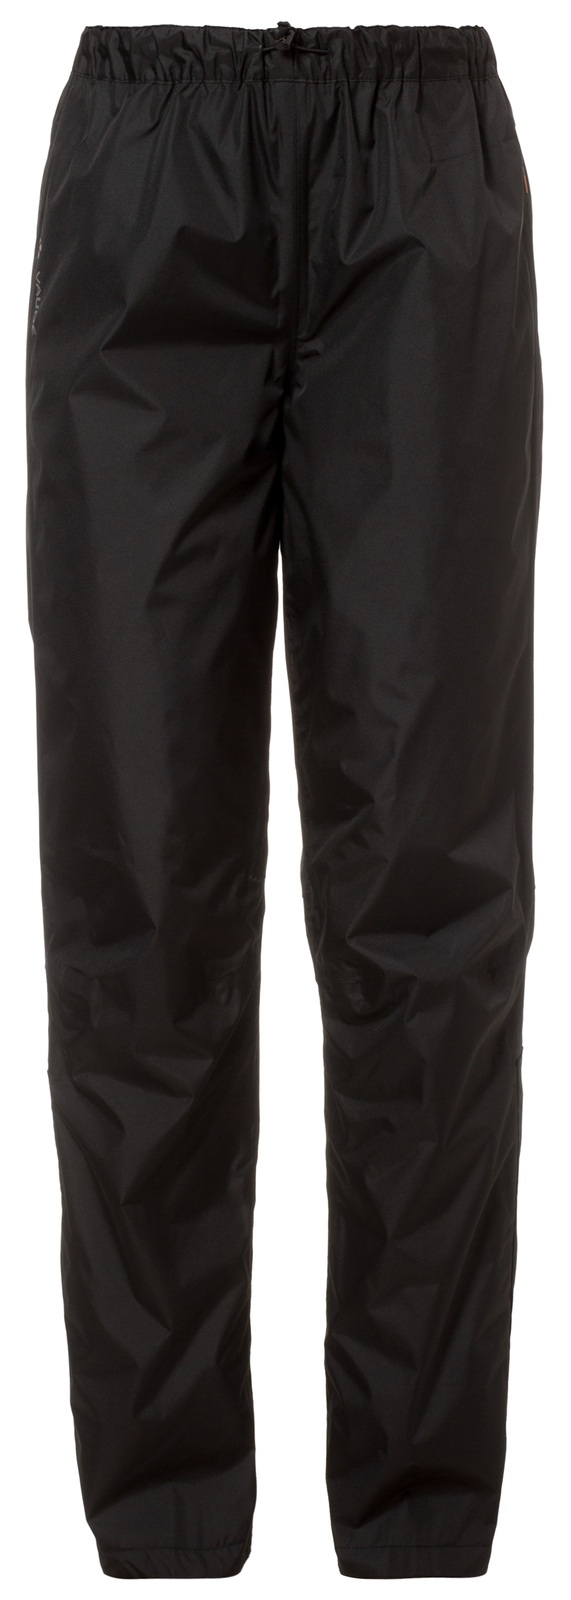 VAUDE Women´s Fluid Pants black Größe 34 - schneider-sports